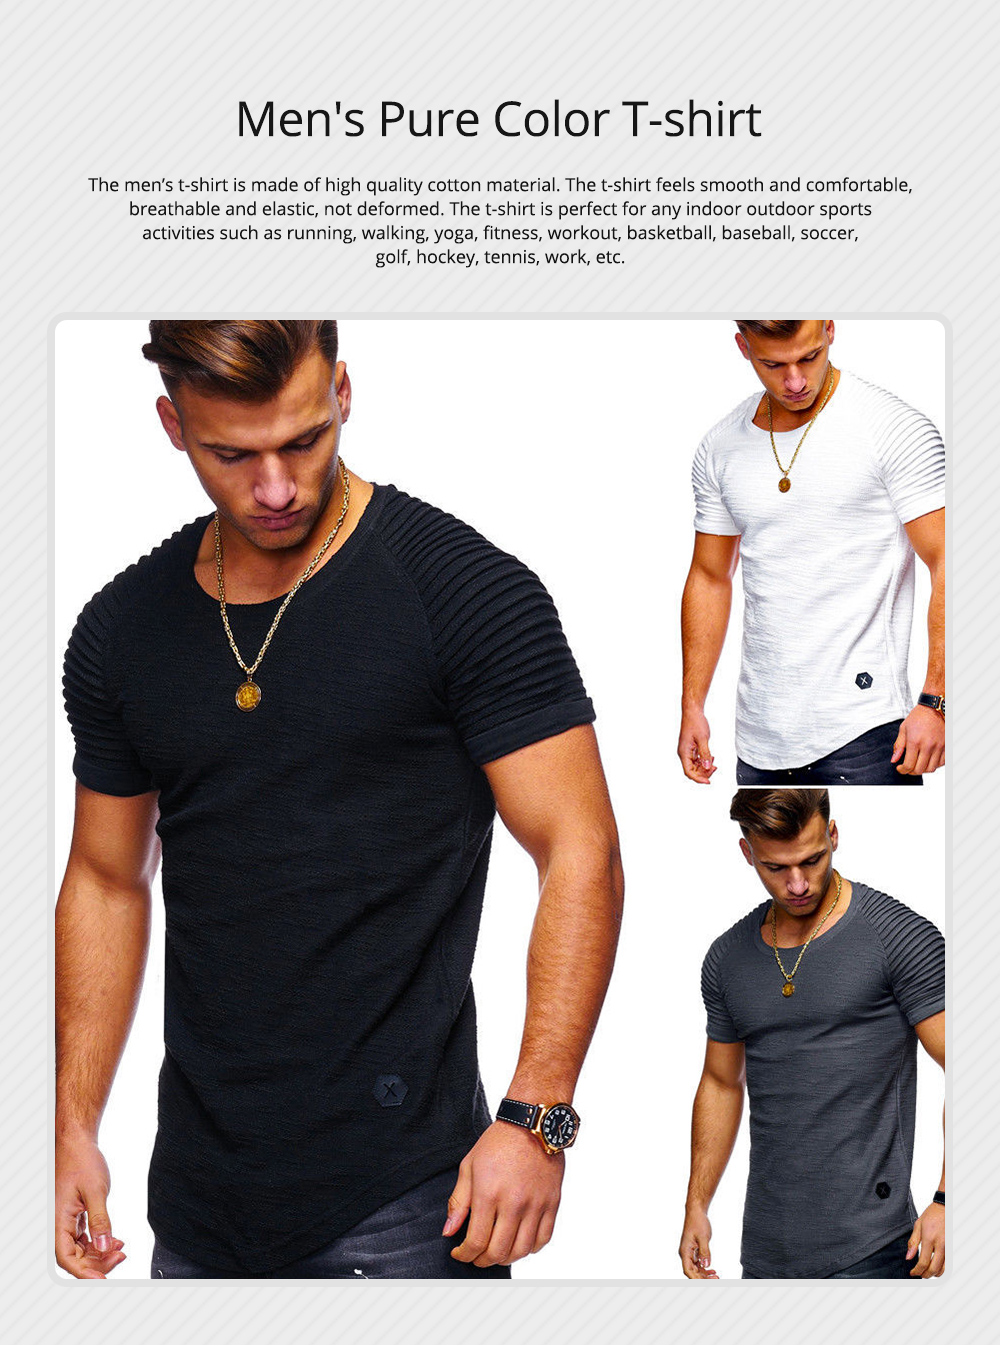 Men's Pure Color T-shirt Wrinkled Short Sleeve Shirt Fashion Stretch Sports Quick-dry T-Shirt 0